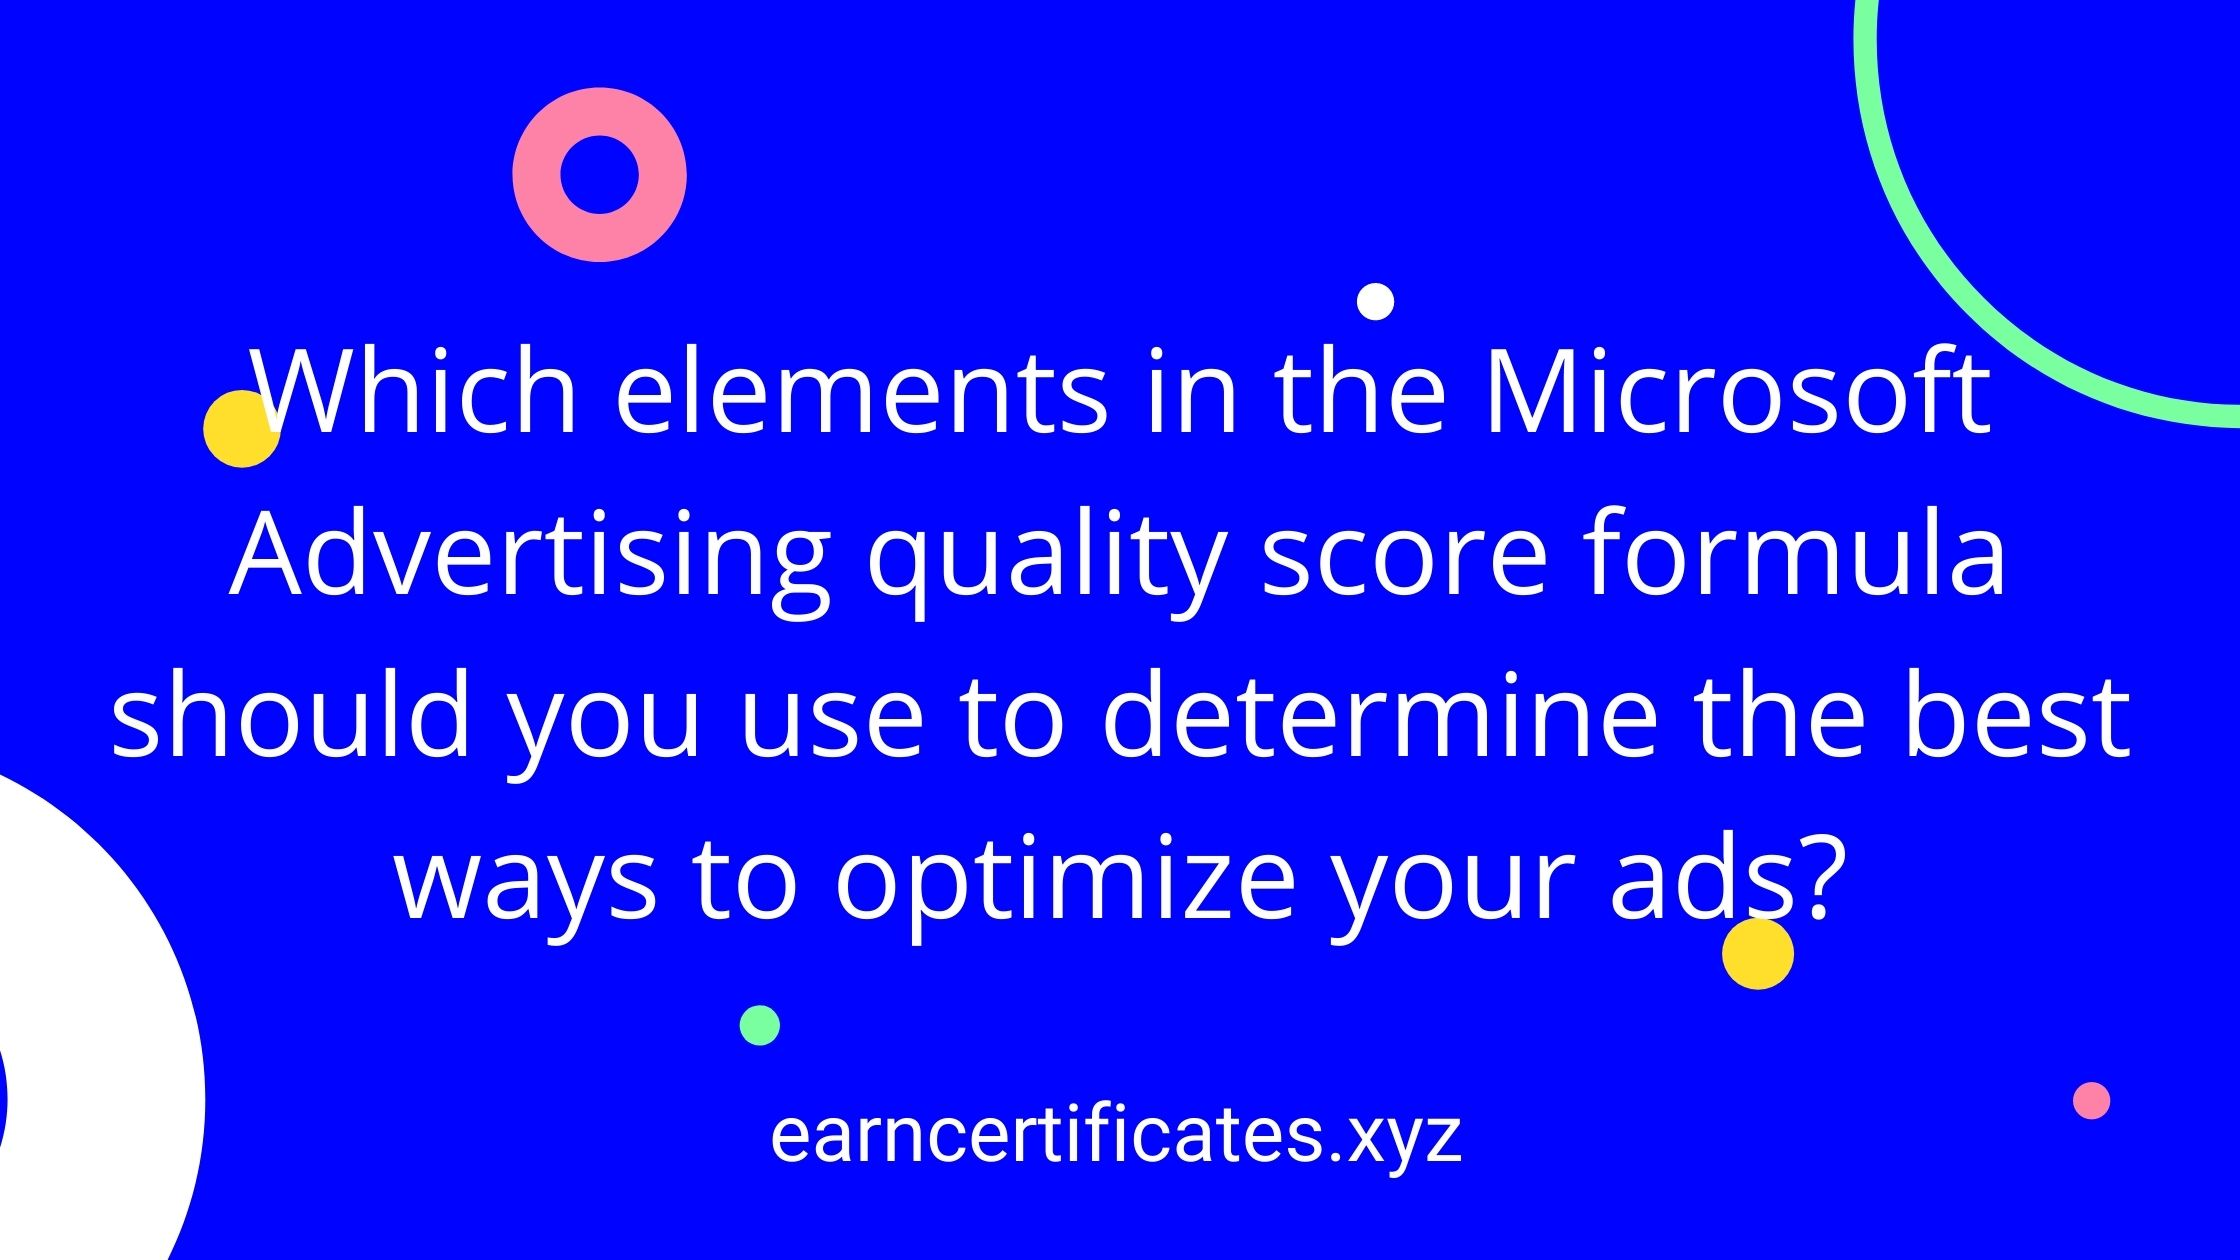 Which elements in the Microsoft Advertising quality score formula should you use to determine the best ways to optimize your ads?